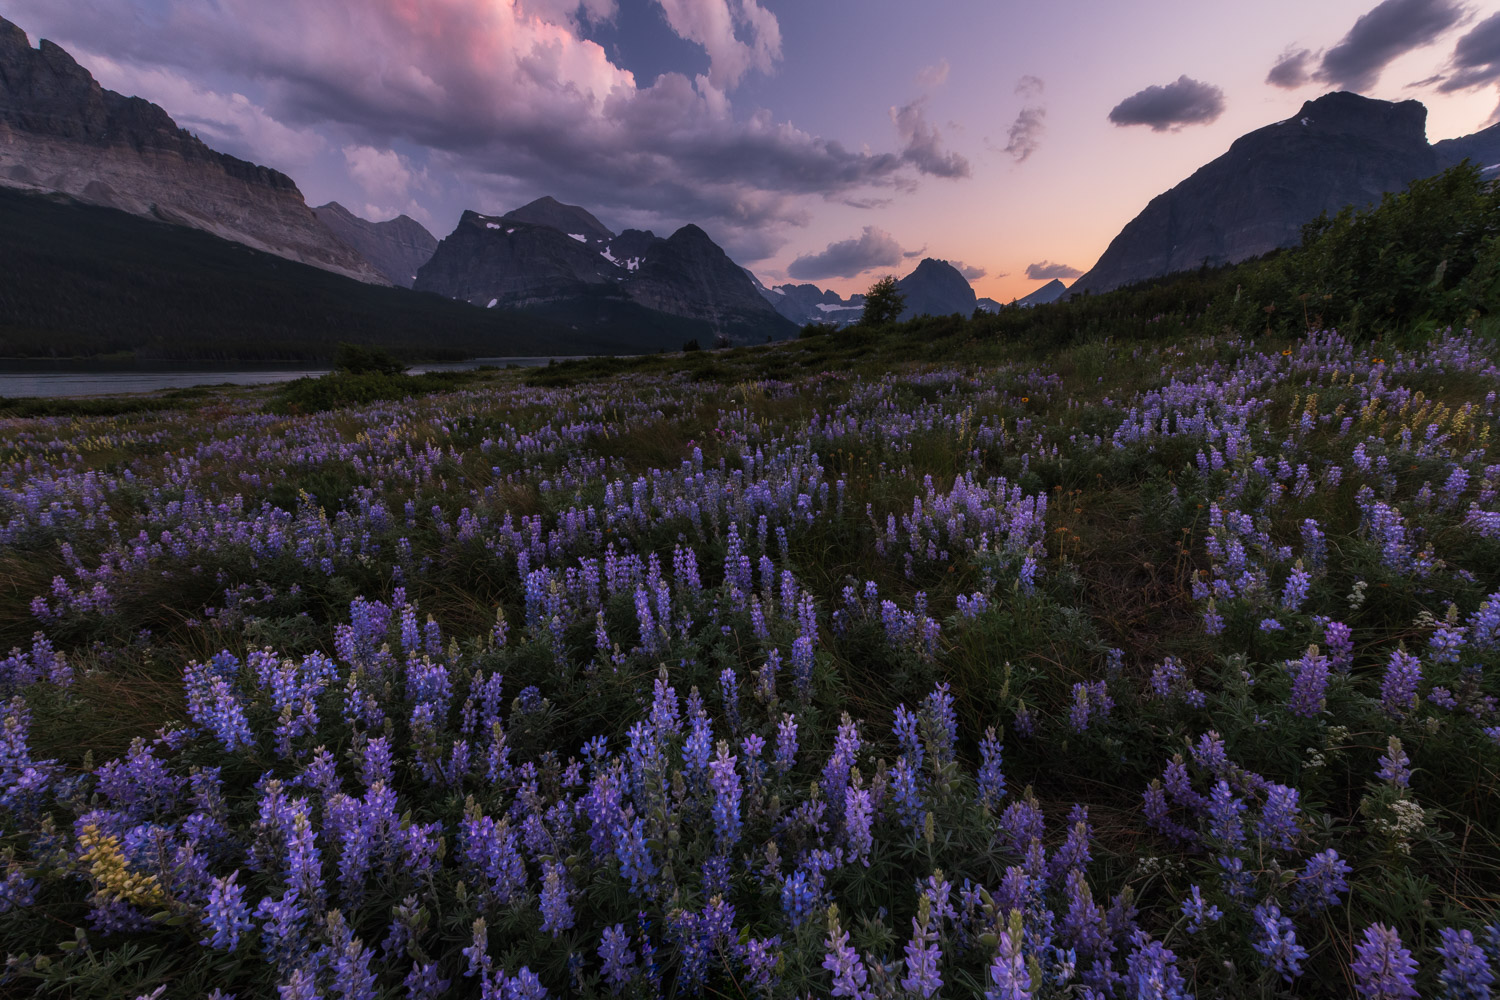 Lupine and the towering peaks of the Continental divide at sunset from Many Glacier.